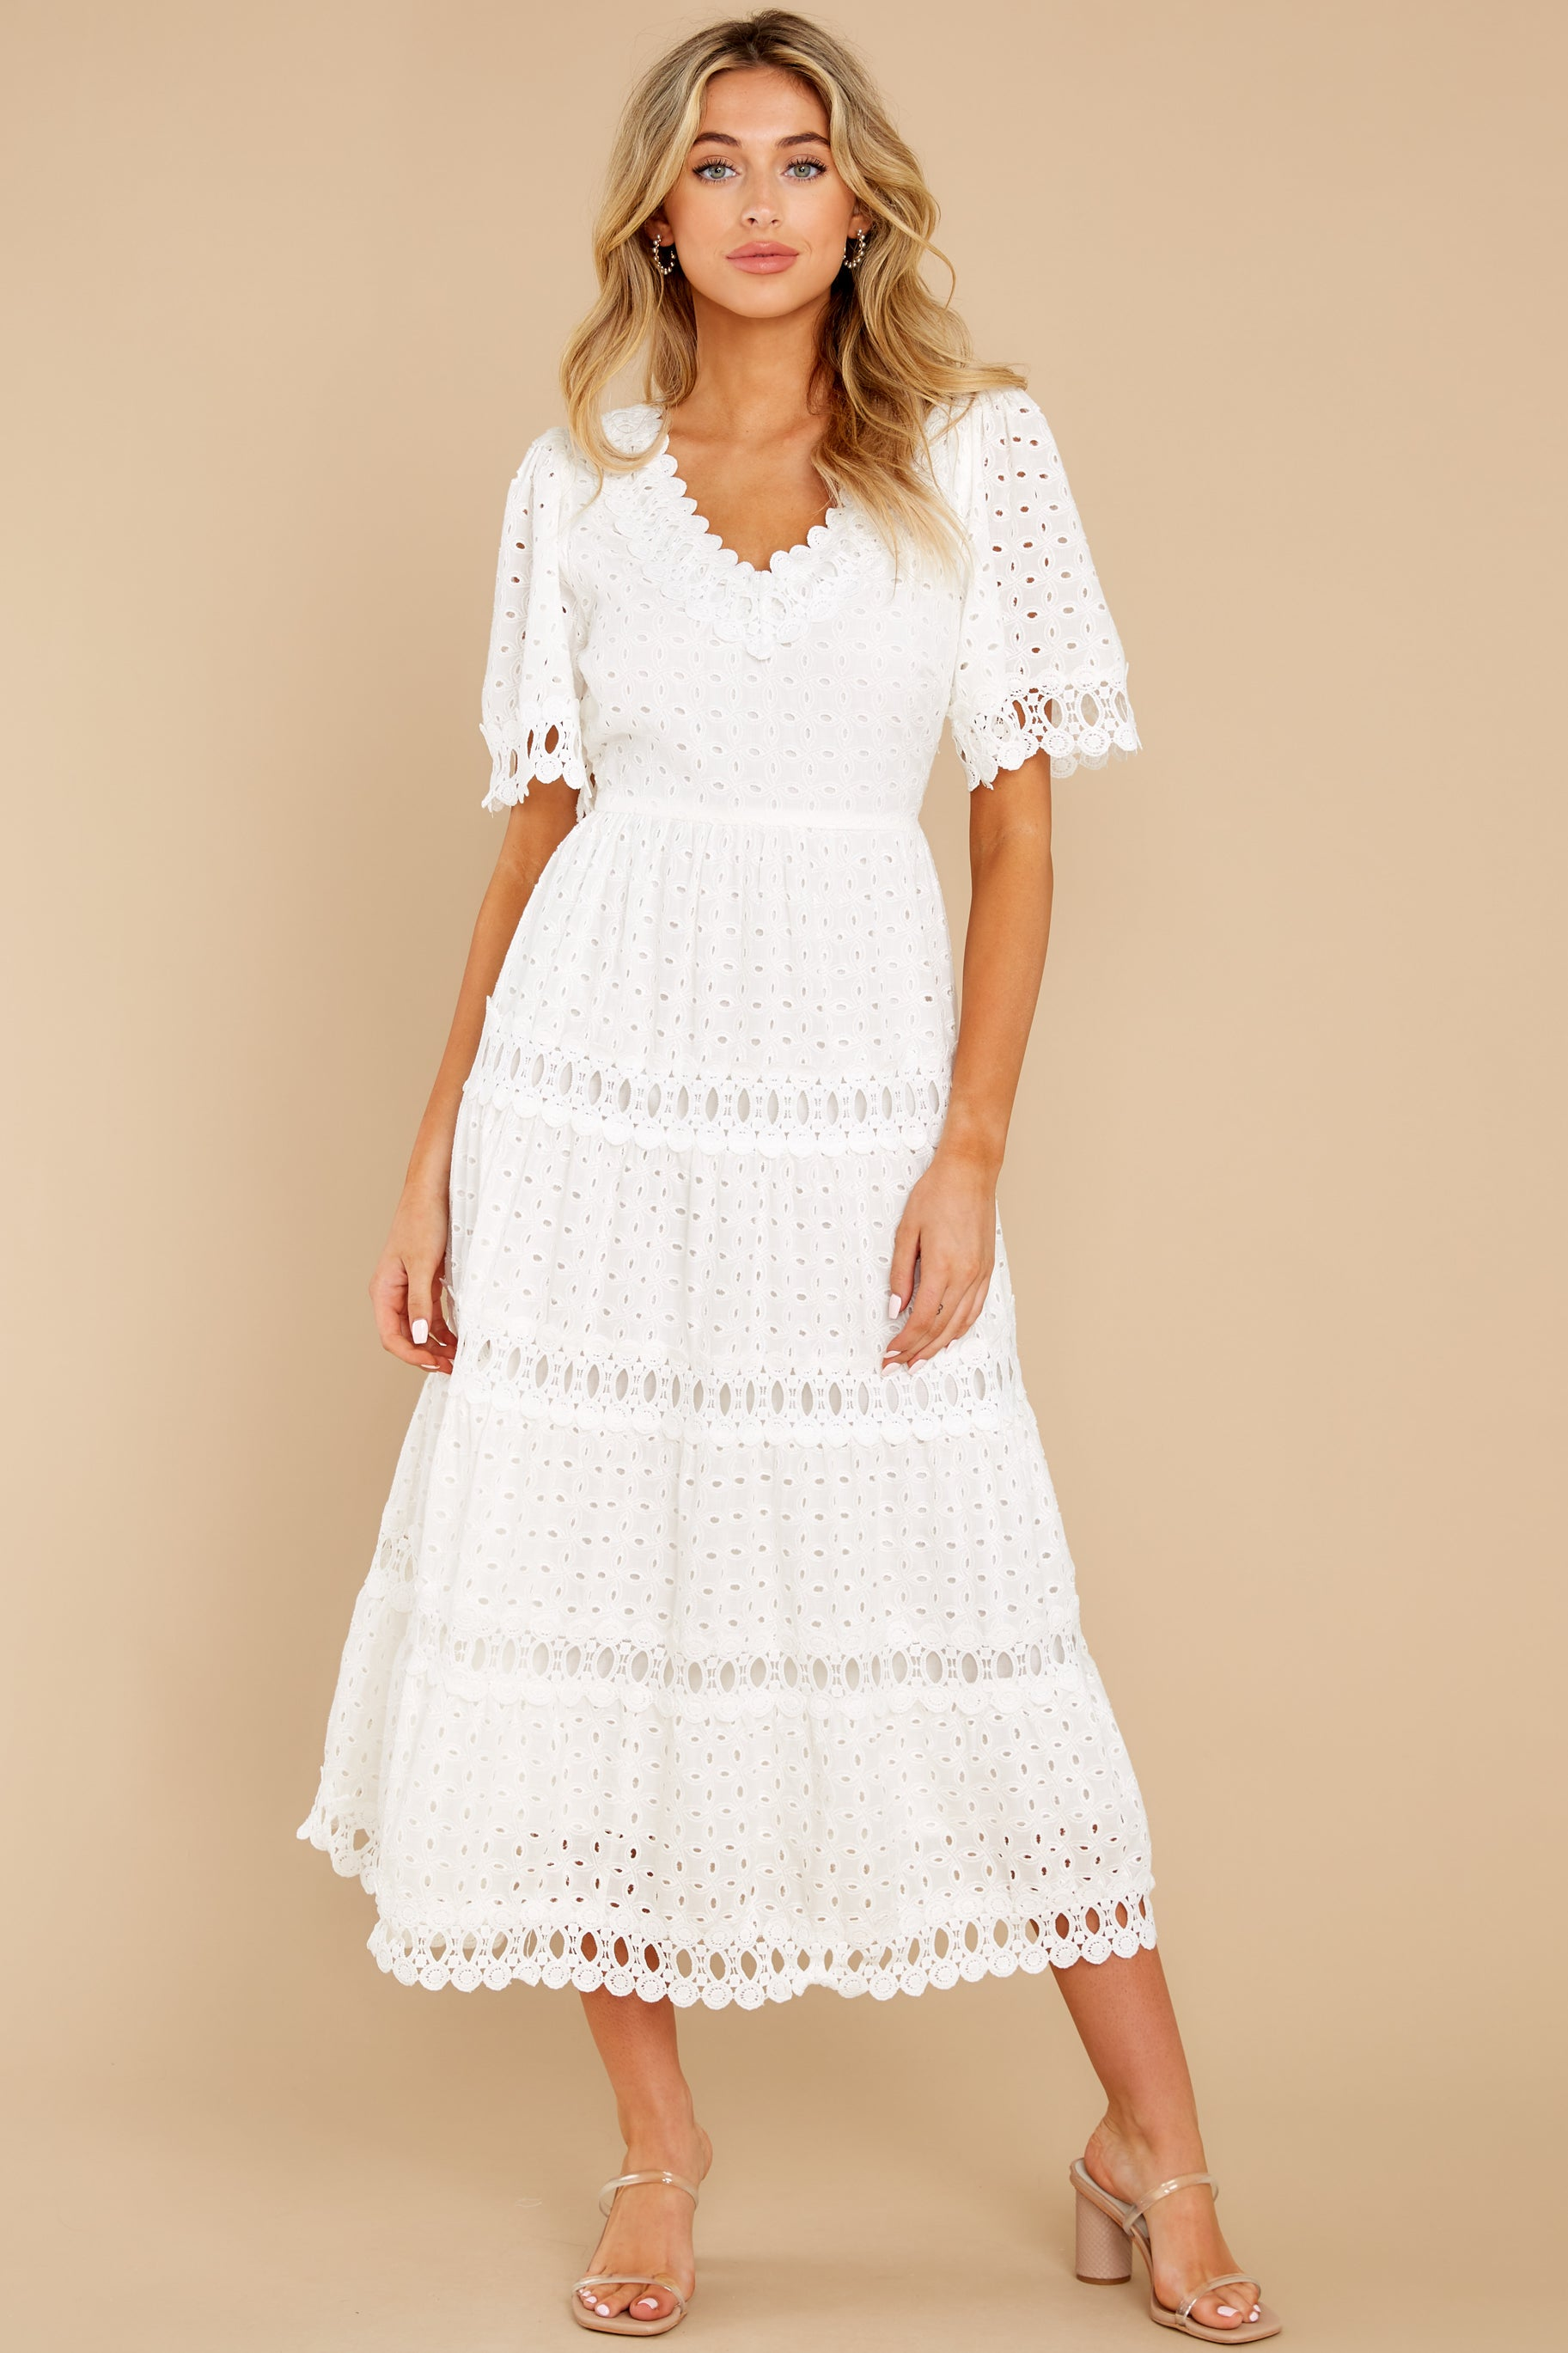 2 Couldn't Help It Off White Eyelet Maxi Dress at reddress.com